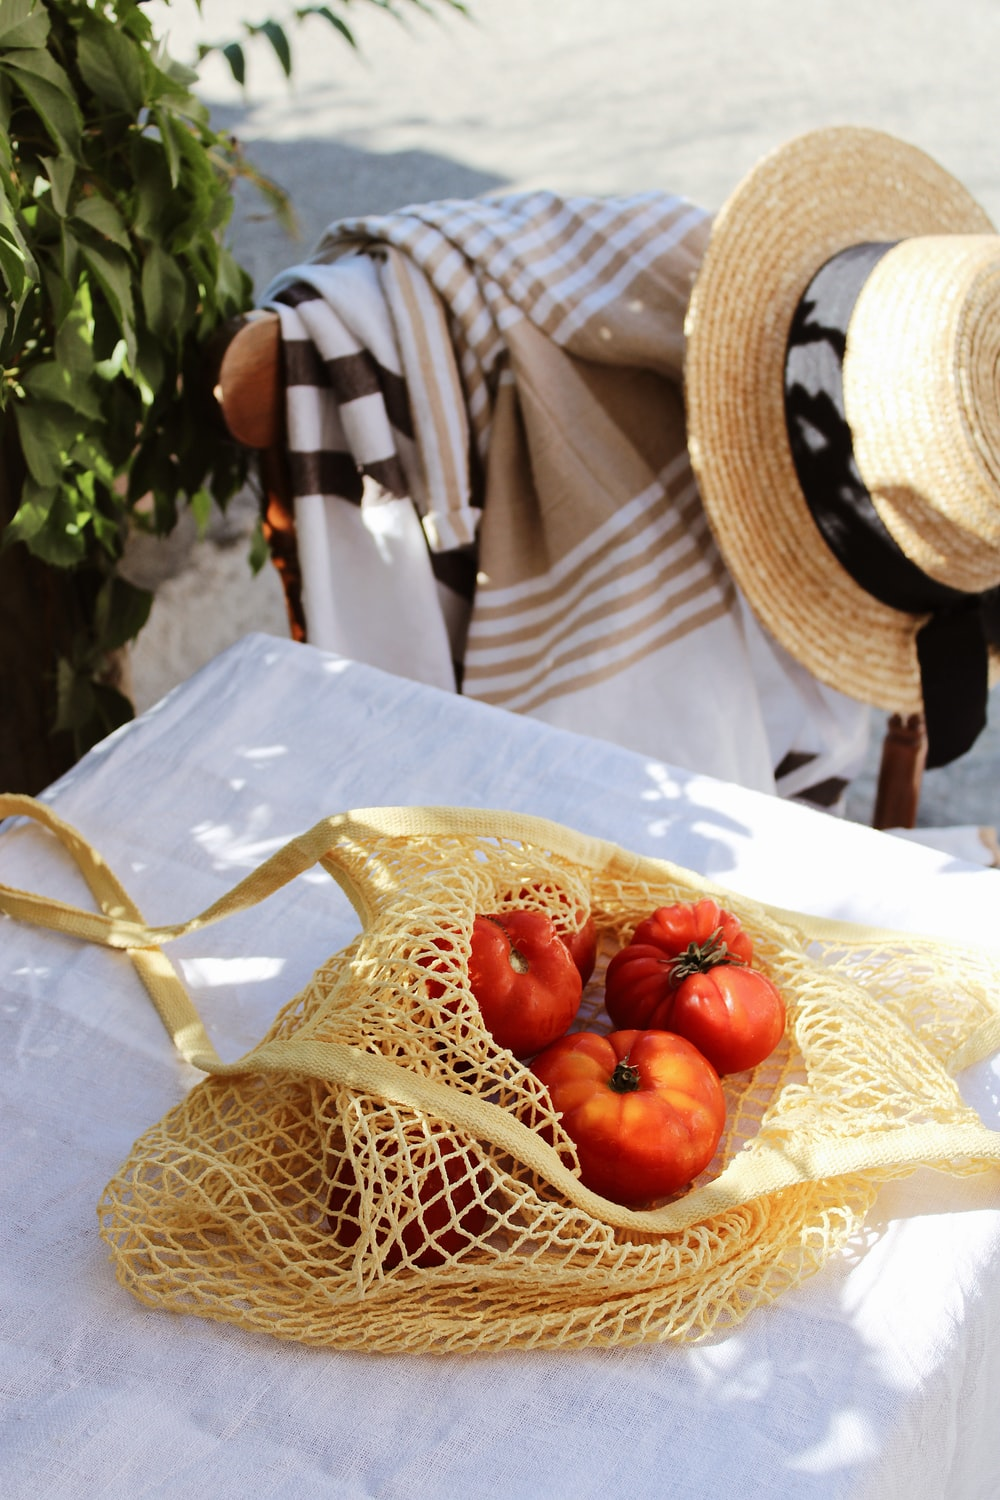 red tomato on brown woven basket